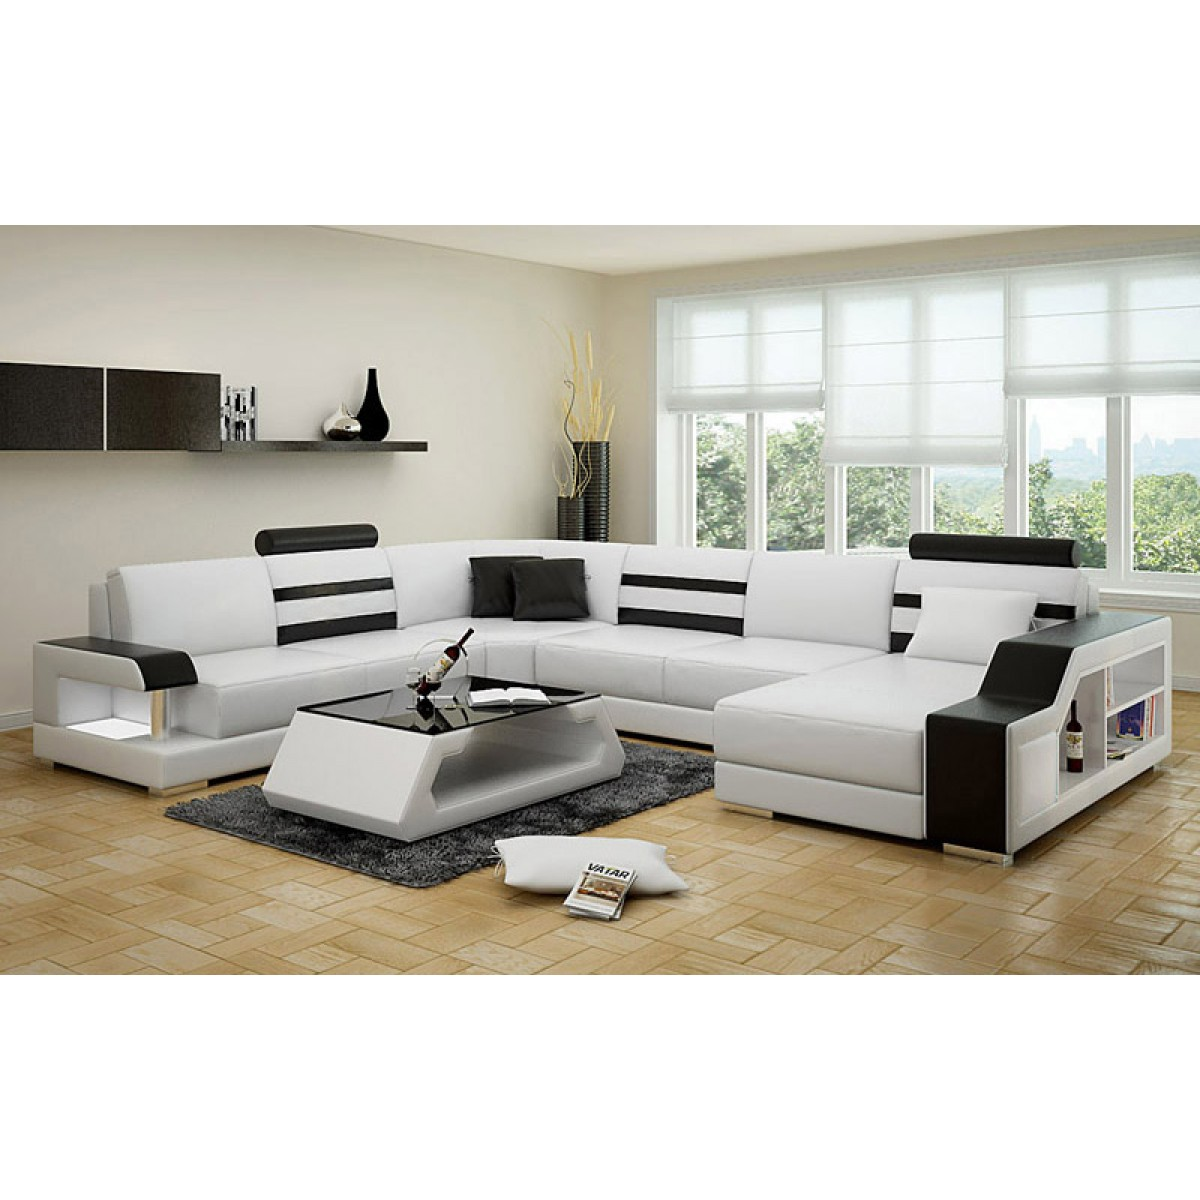 canap d 39 angle panoramique en cuir castel clairage int gr pop de. Black Bedroom Furniture Sets. Home Design Ideas